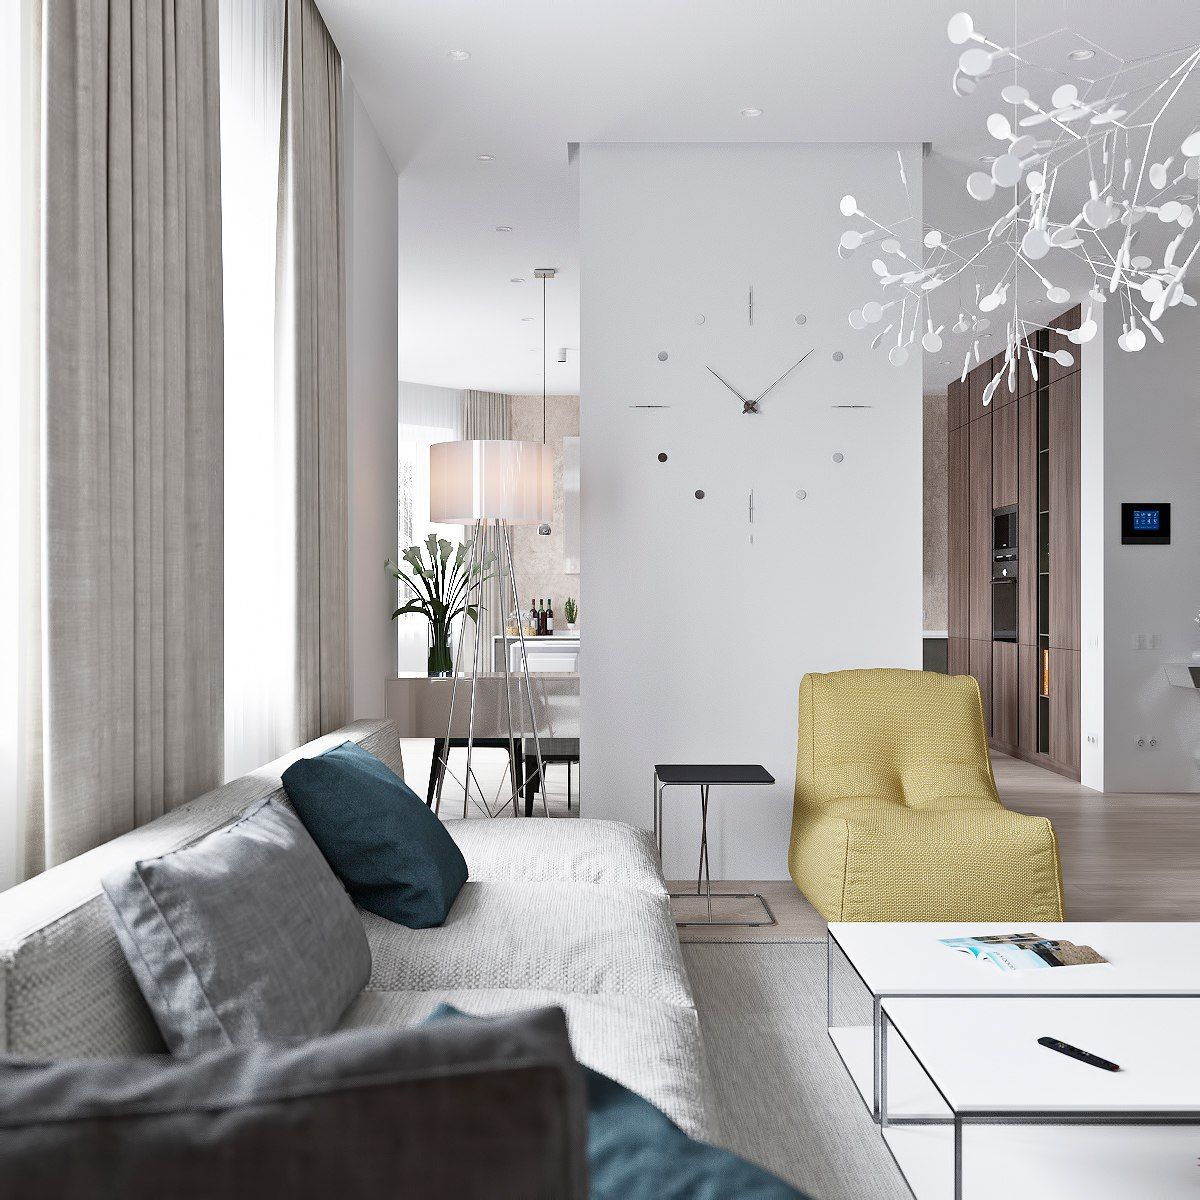 Simple Home Interior Design: 3 Light Interiors With Creative Pops Of Color